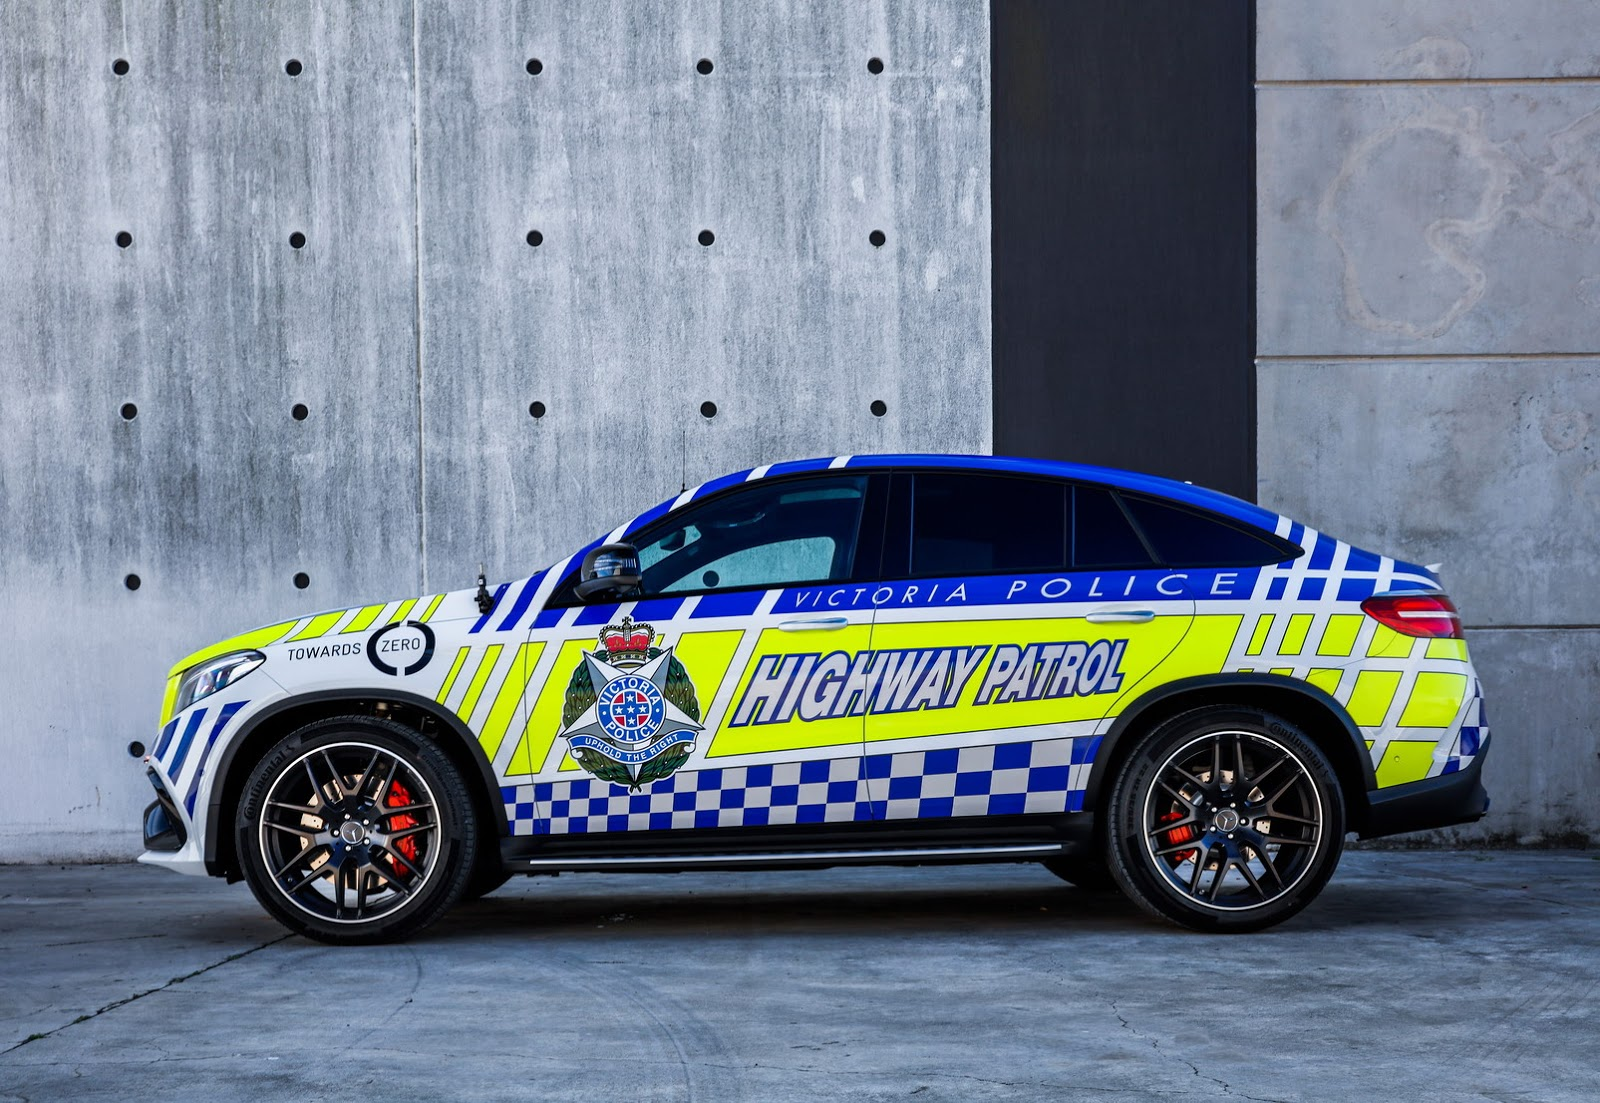 Mercedes-AMG GLE63 S Coupe police